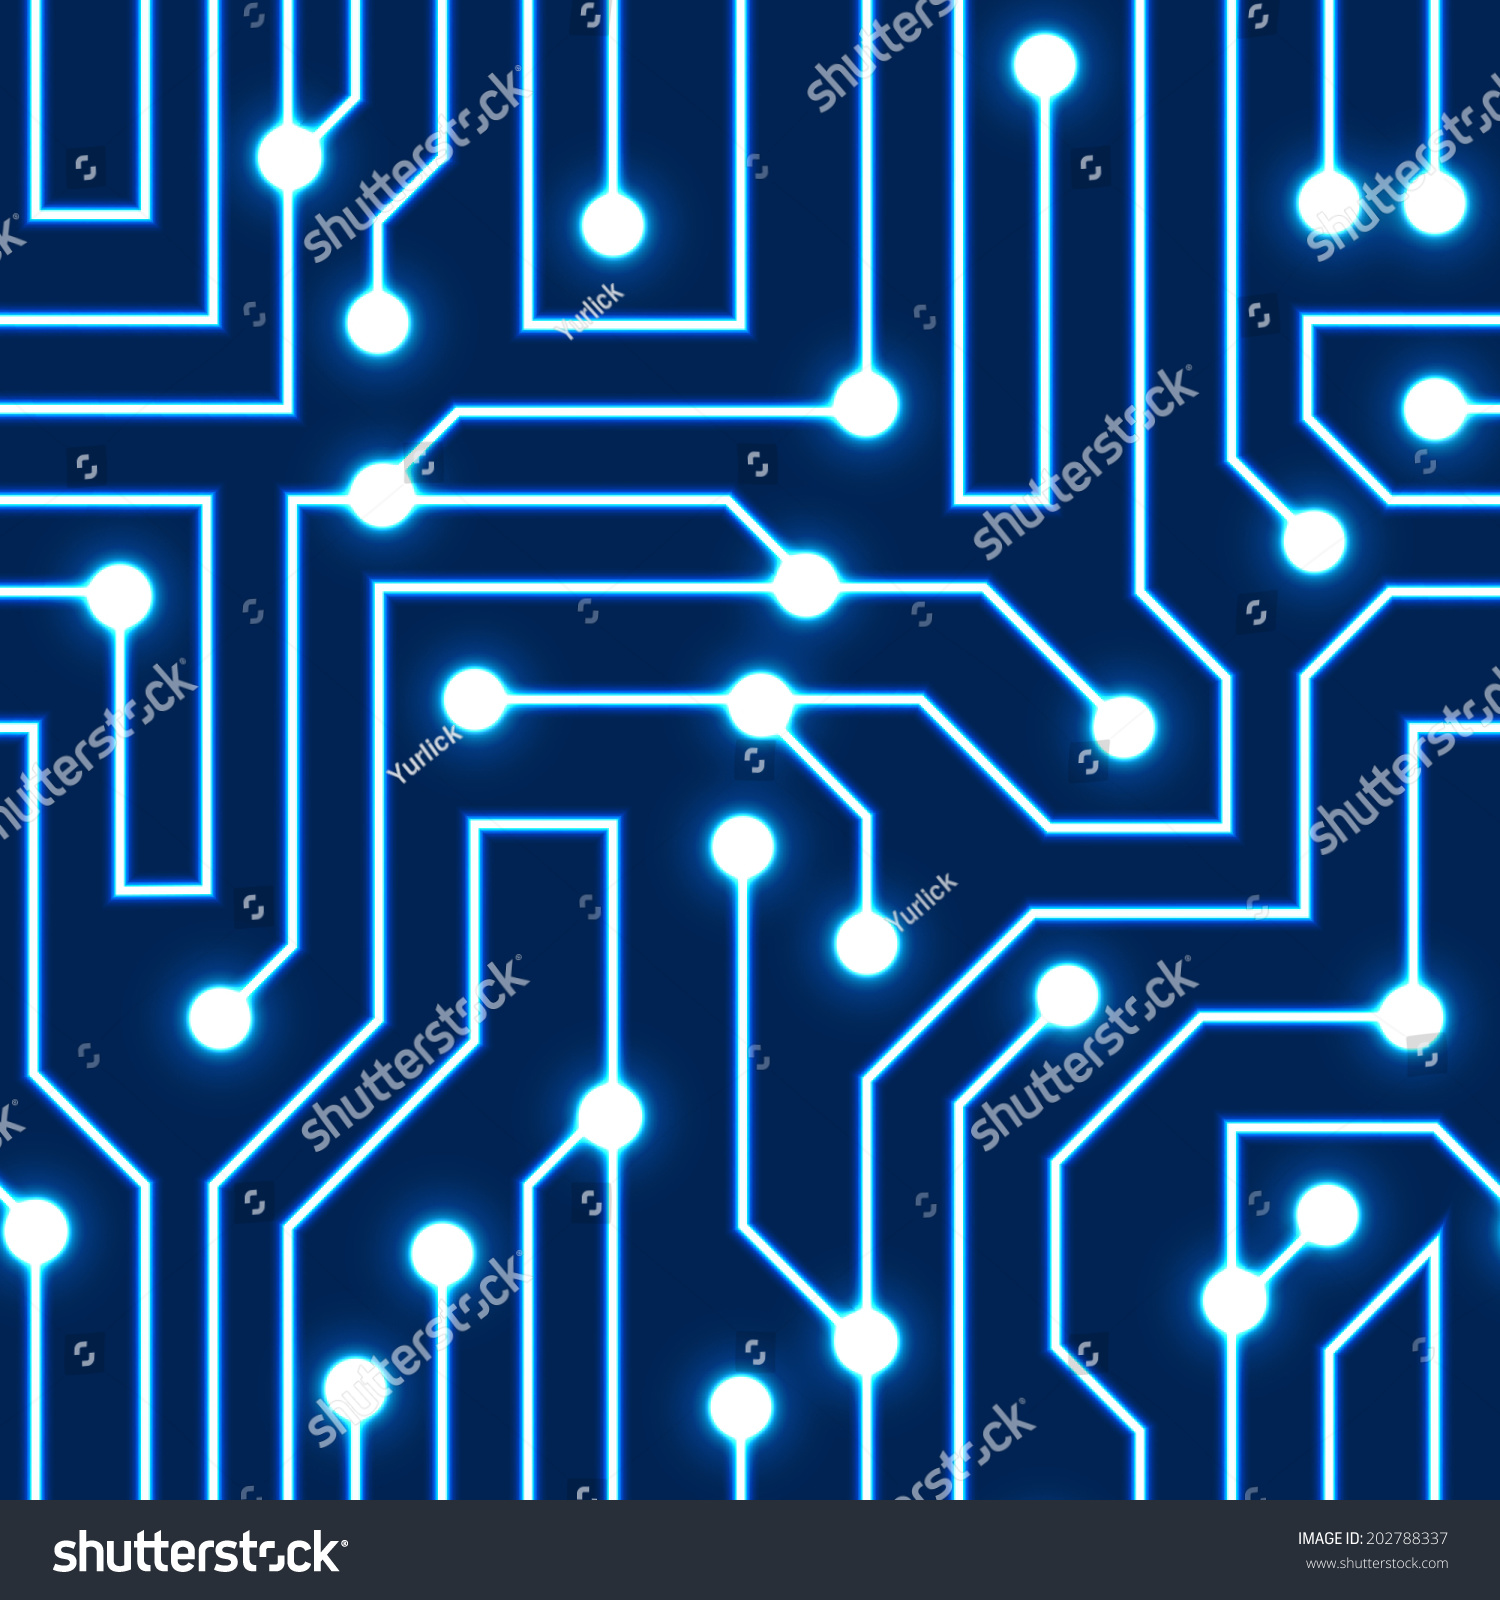 Blue Circuit Board Wallpaper Vector Wiring Maytag Atlantis Washer Diagram Diagrams What Are The Overhead Seamless Pattern Stock Royalty Rh Shutterstock Com